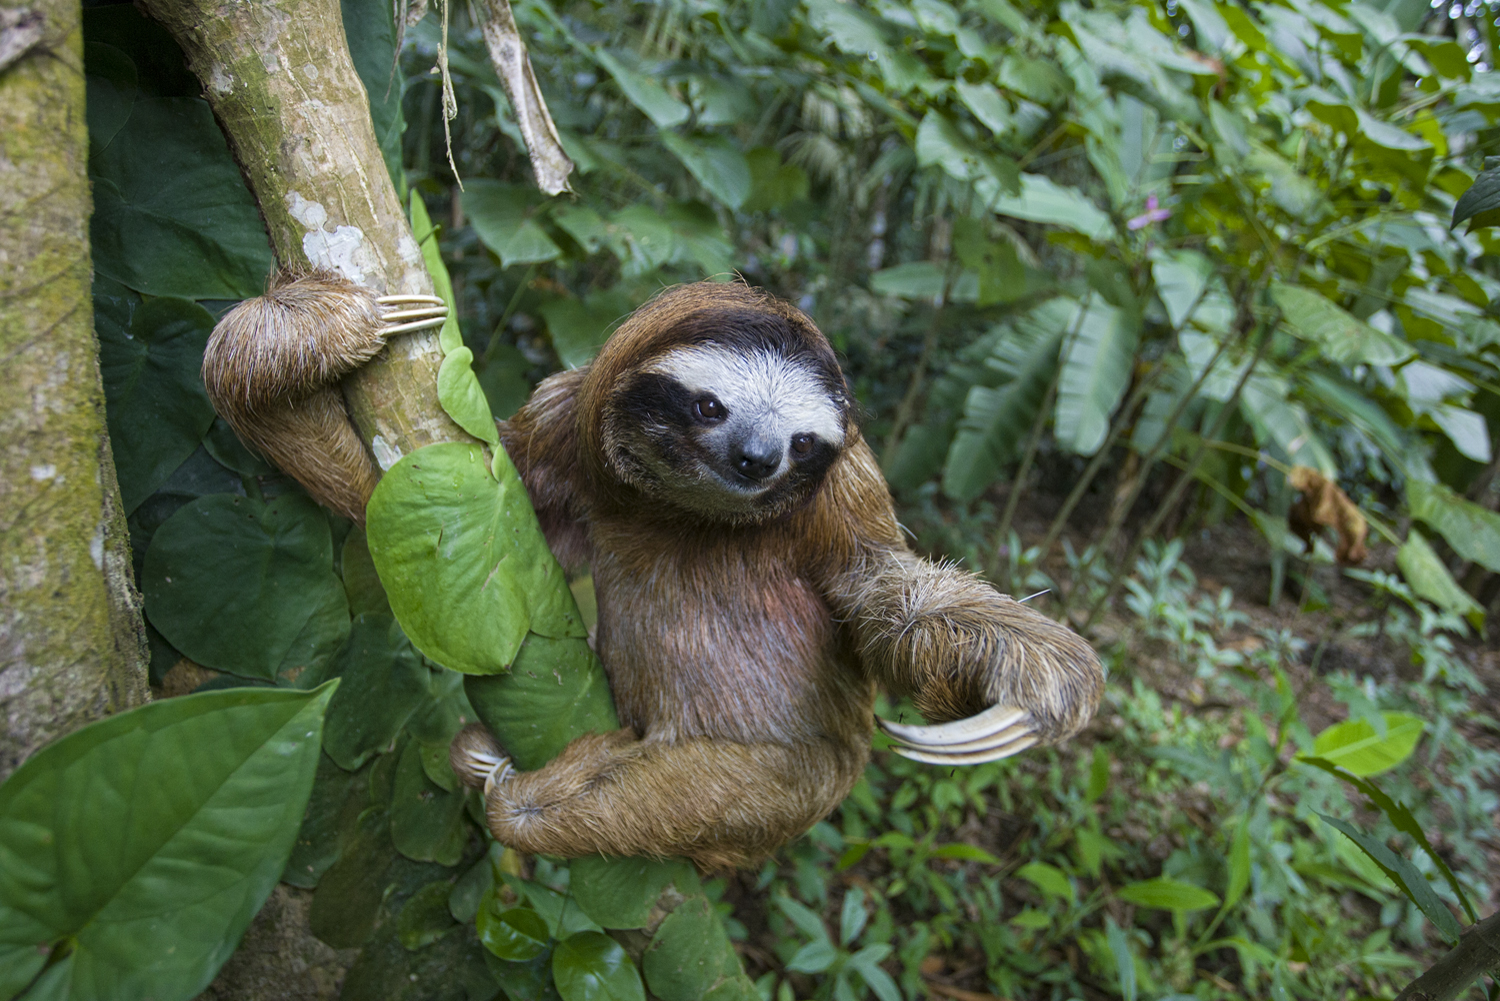 how fast does a three toed sloth move